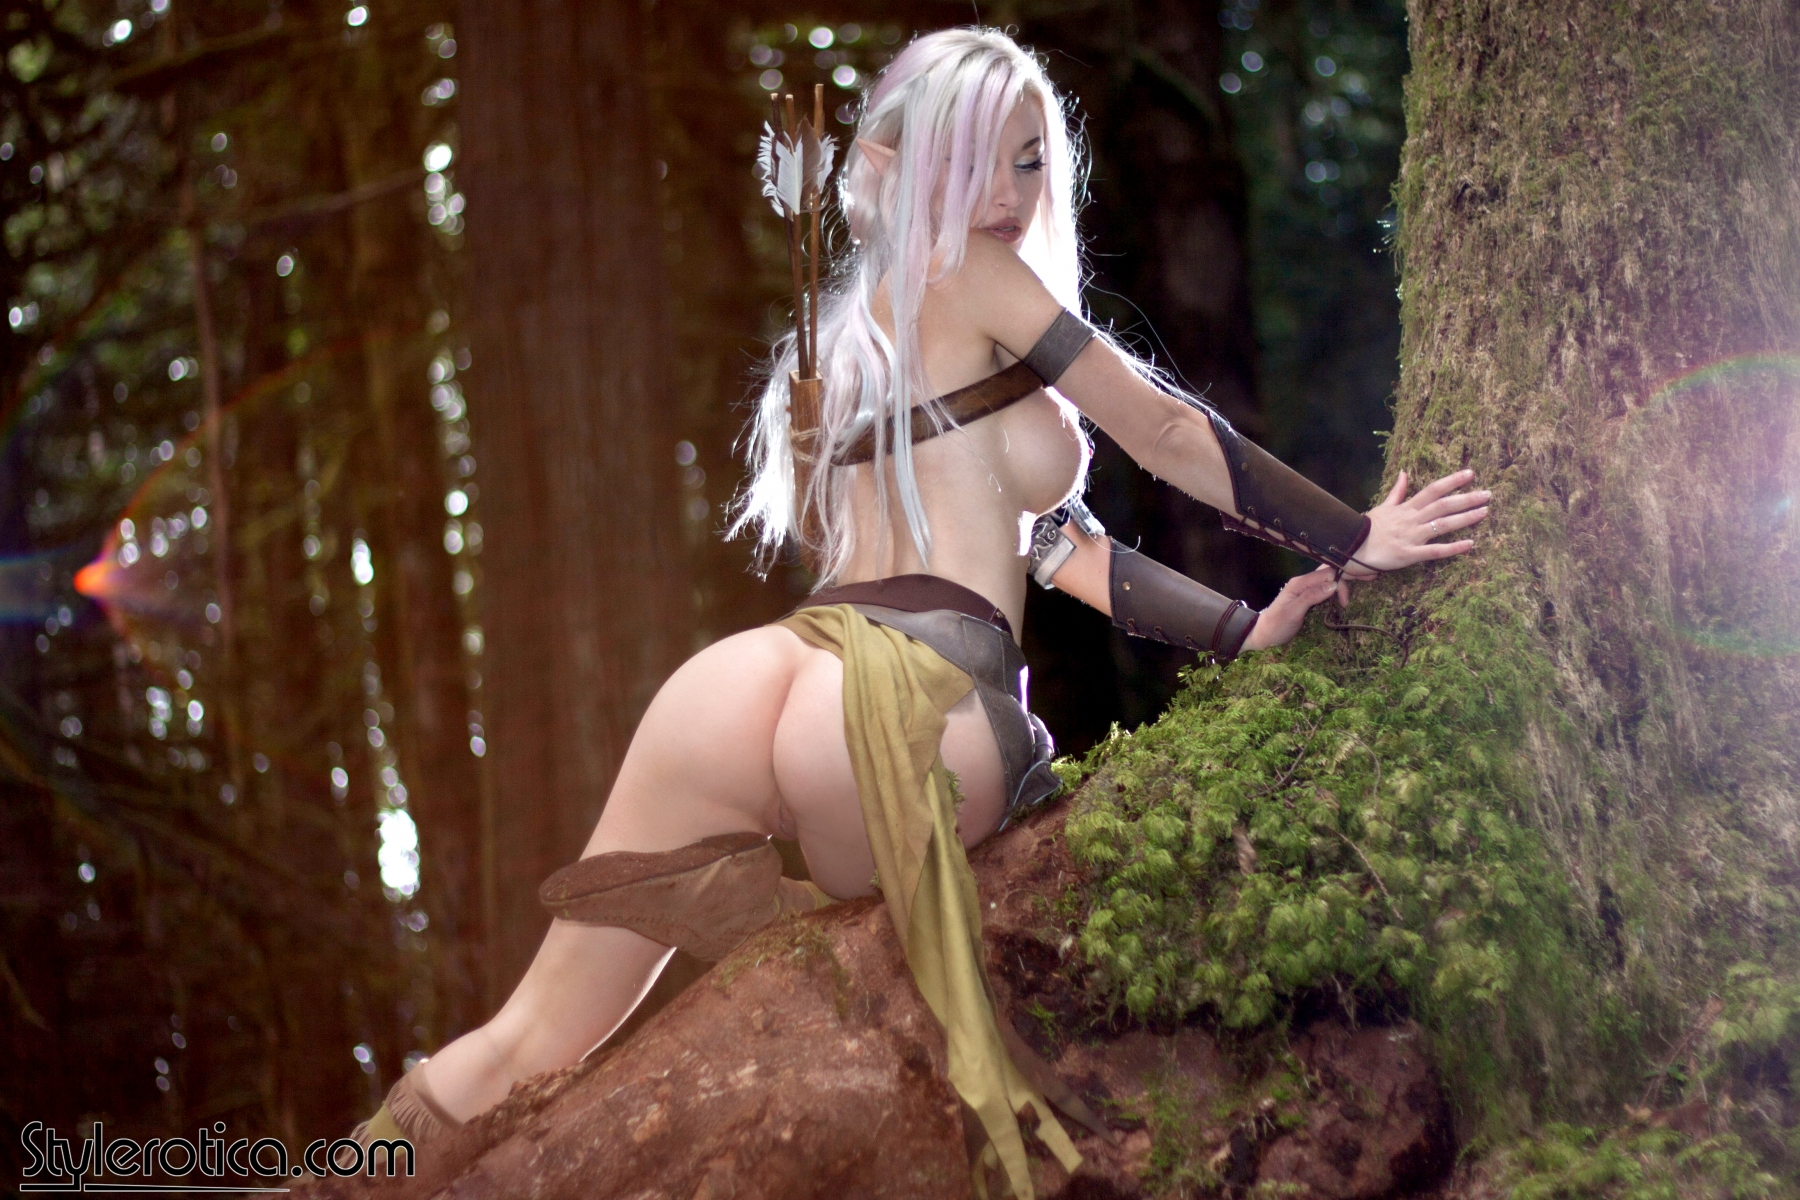 Nude elves cosplay sexy photo